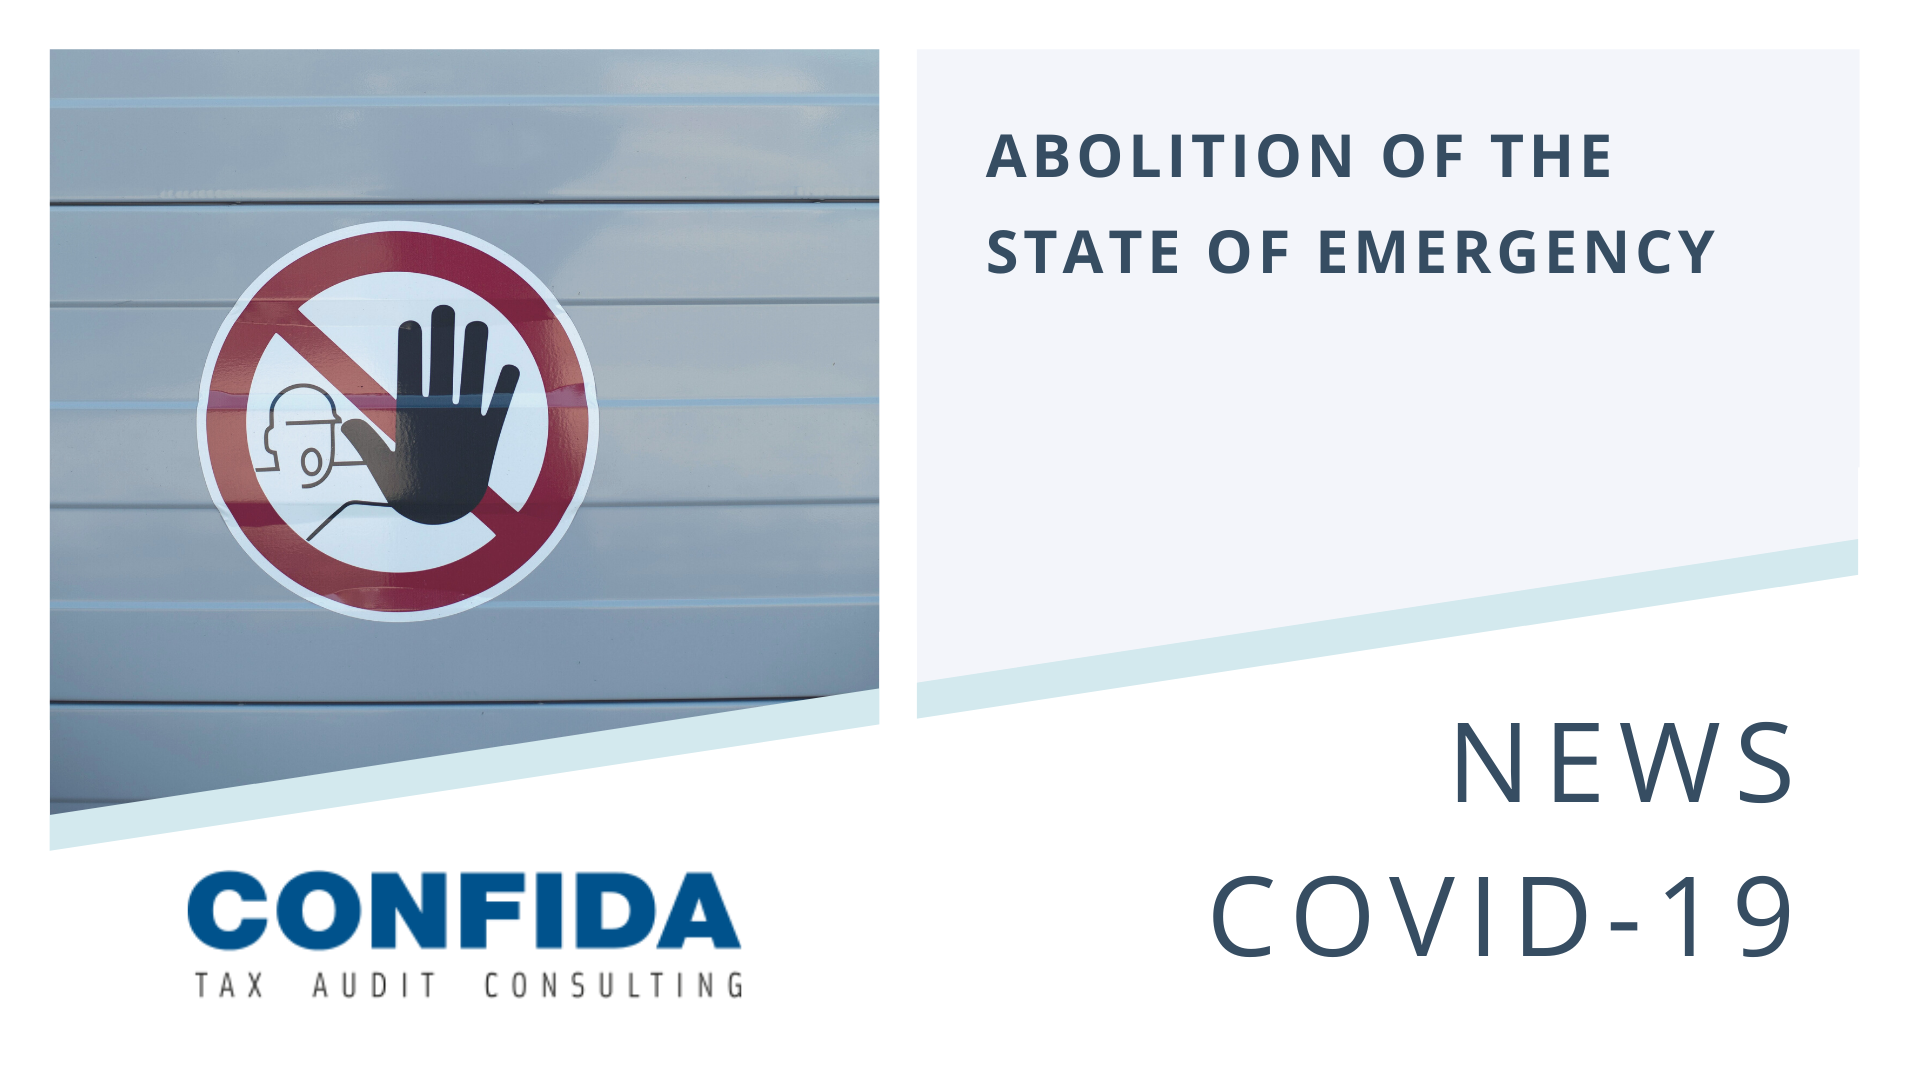 Decision on the Abolition of the State of Emergency due to COVID-19